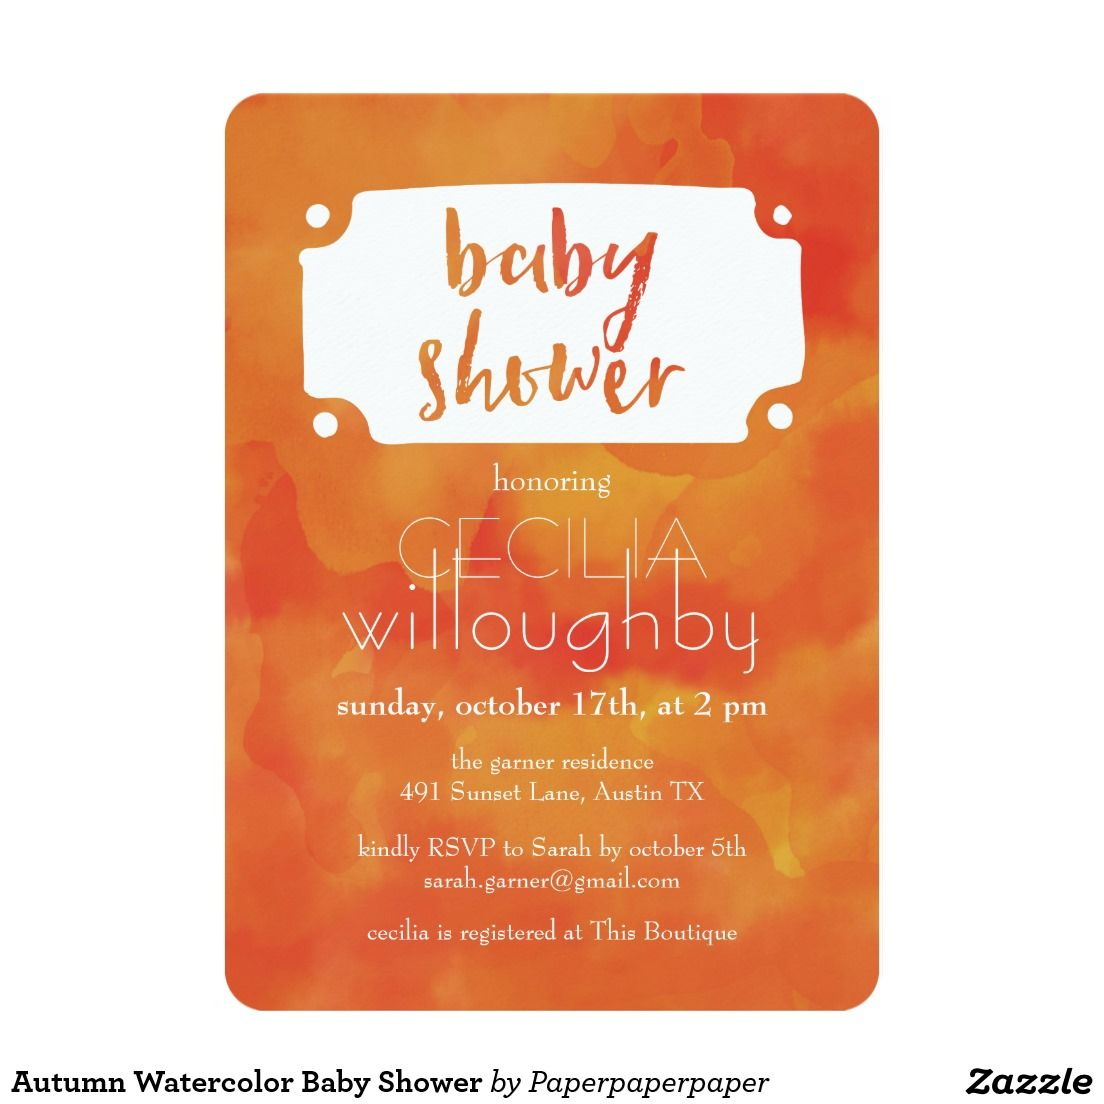 Autumn Watercolor Baby Shower Card